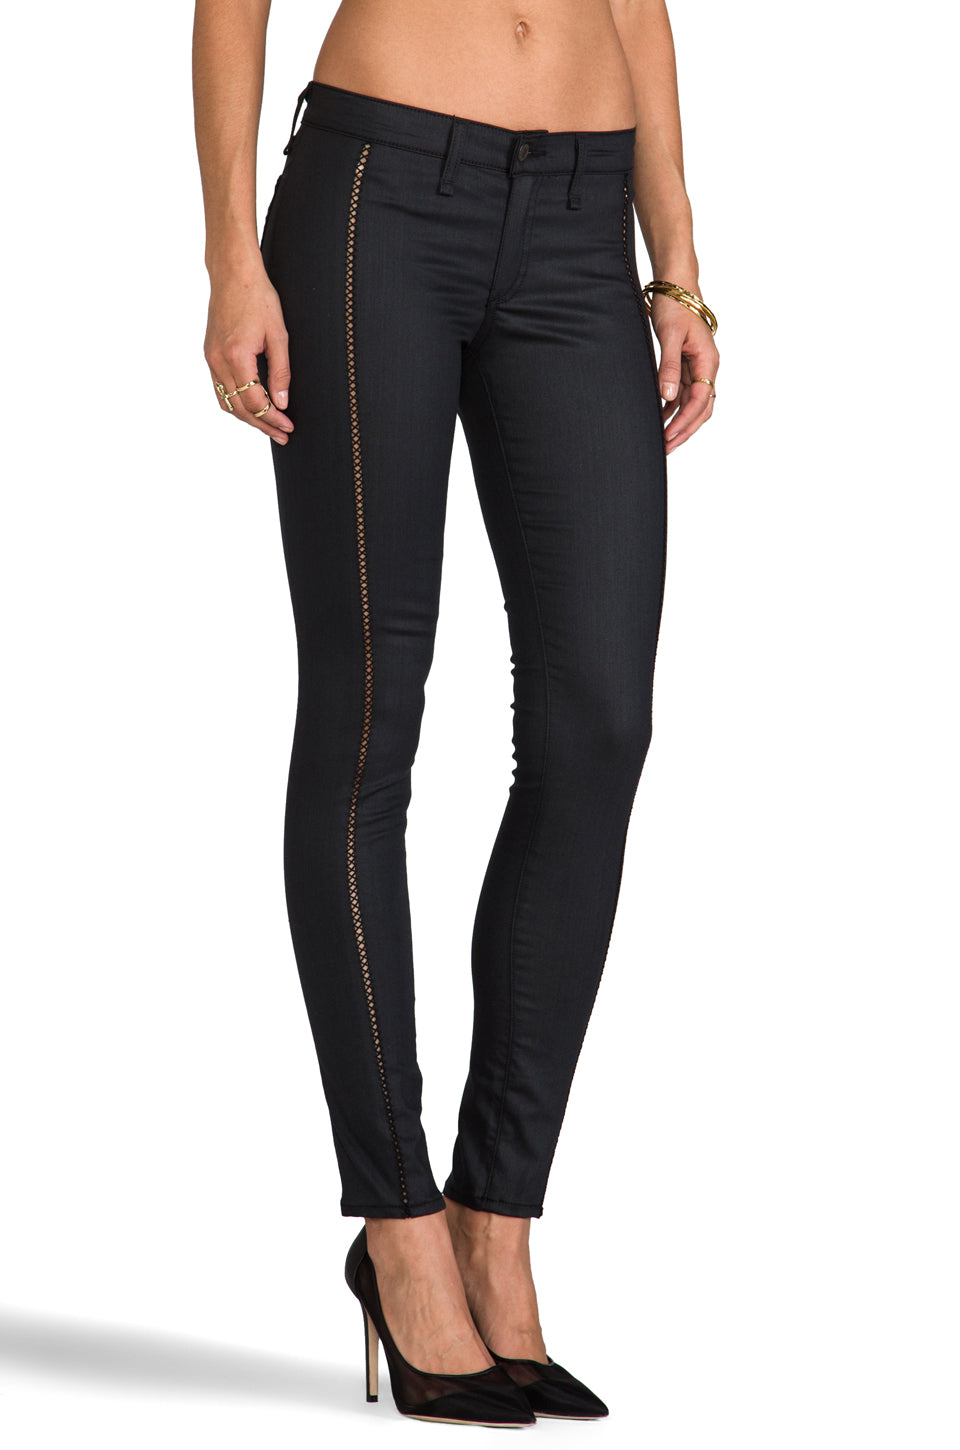 Rag & Bone Sexy Split Separating Pant